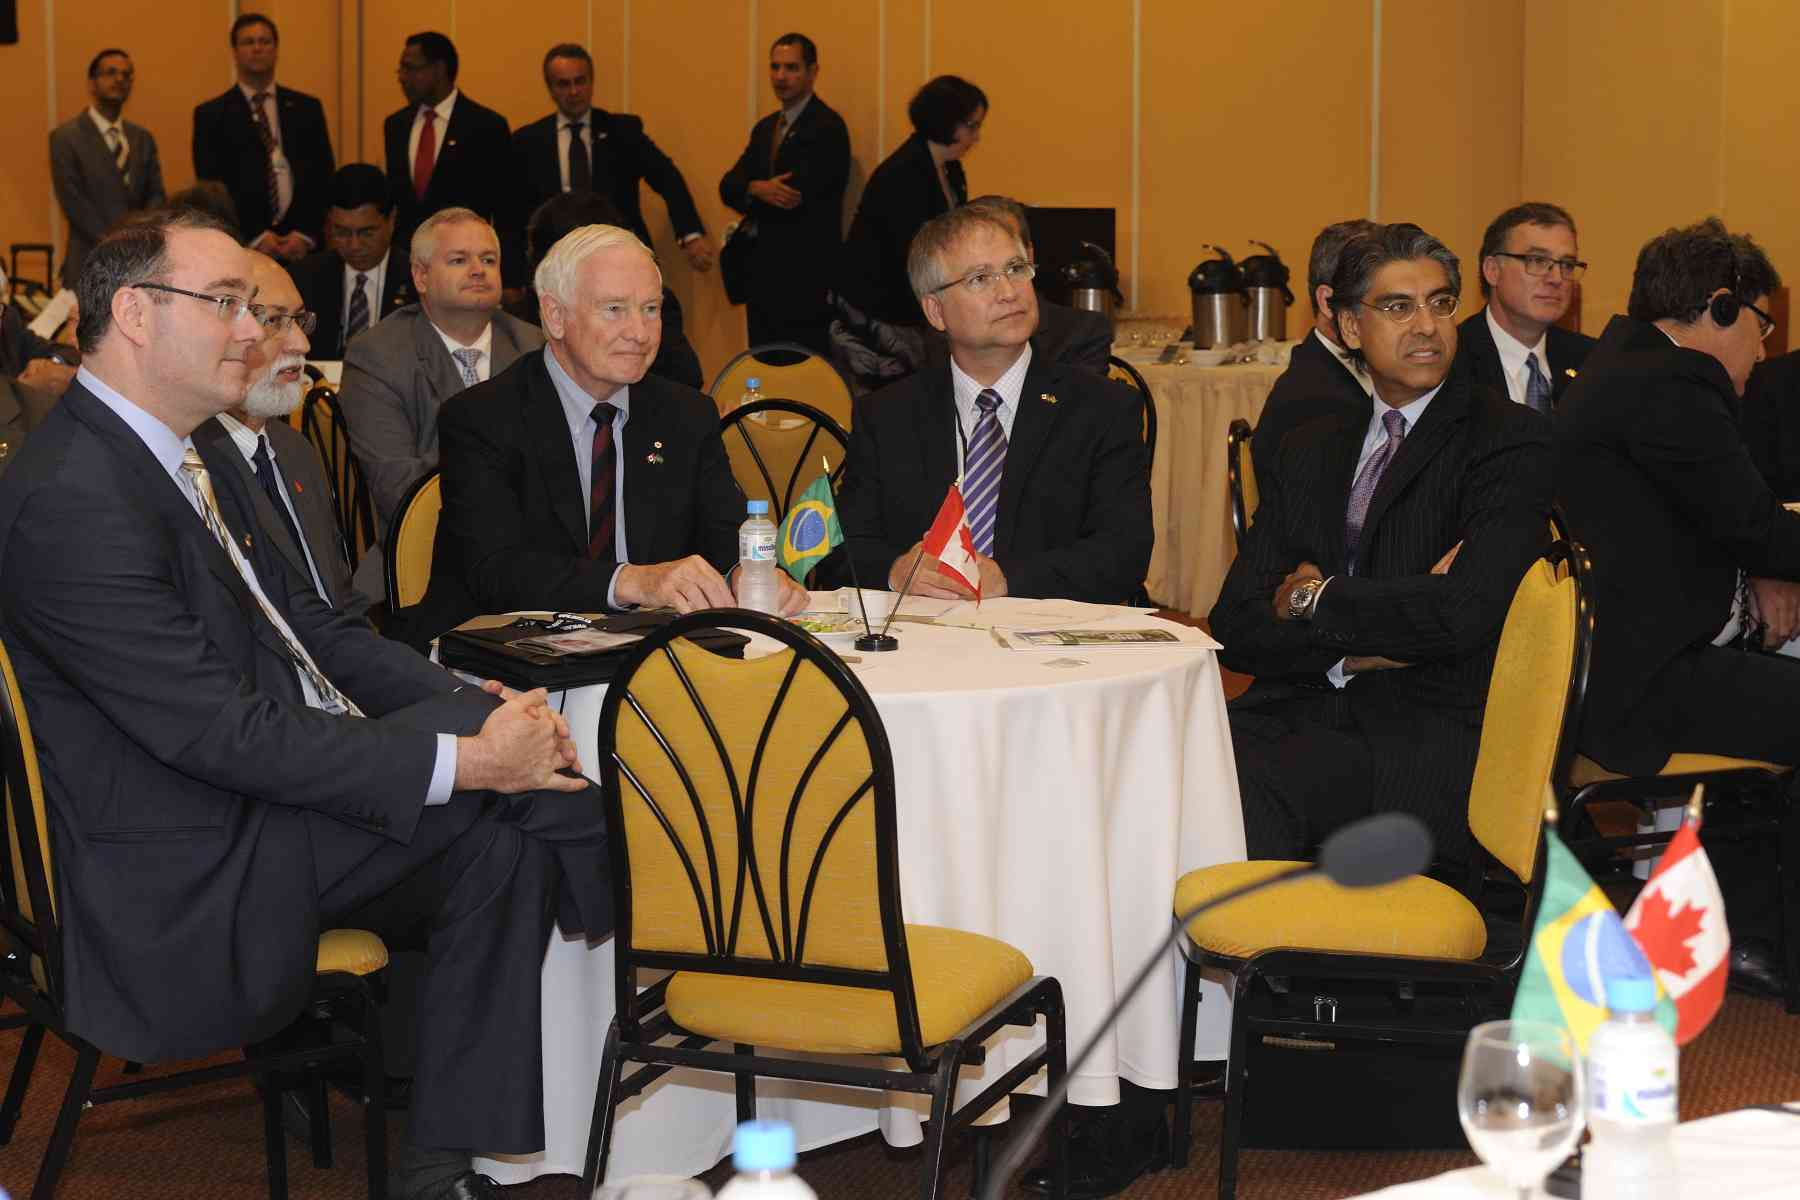 The Governor General attended the the AUCC Canada-Brazil University Presidents' Round Table with delegates, including the Honourable Gary Goodyear (left of the Governor General), Minister of State (Science and Technology), and Mr. Jamal A. Khokhar (left of Minister Goodyear), Ambassador of Canada to the Federative State of Brazil.